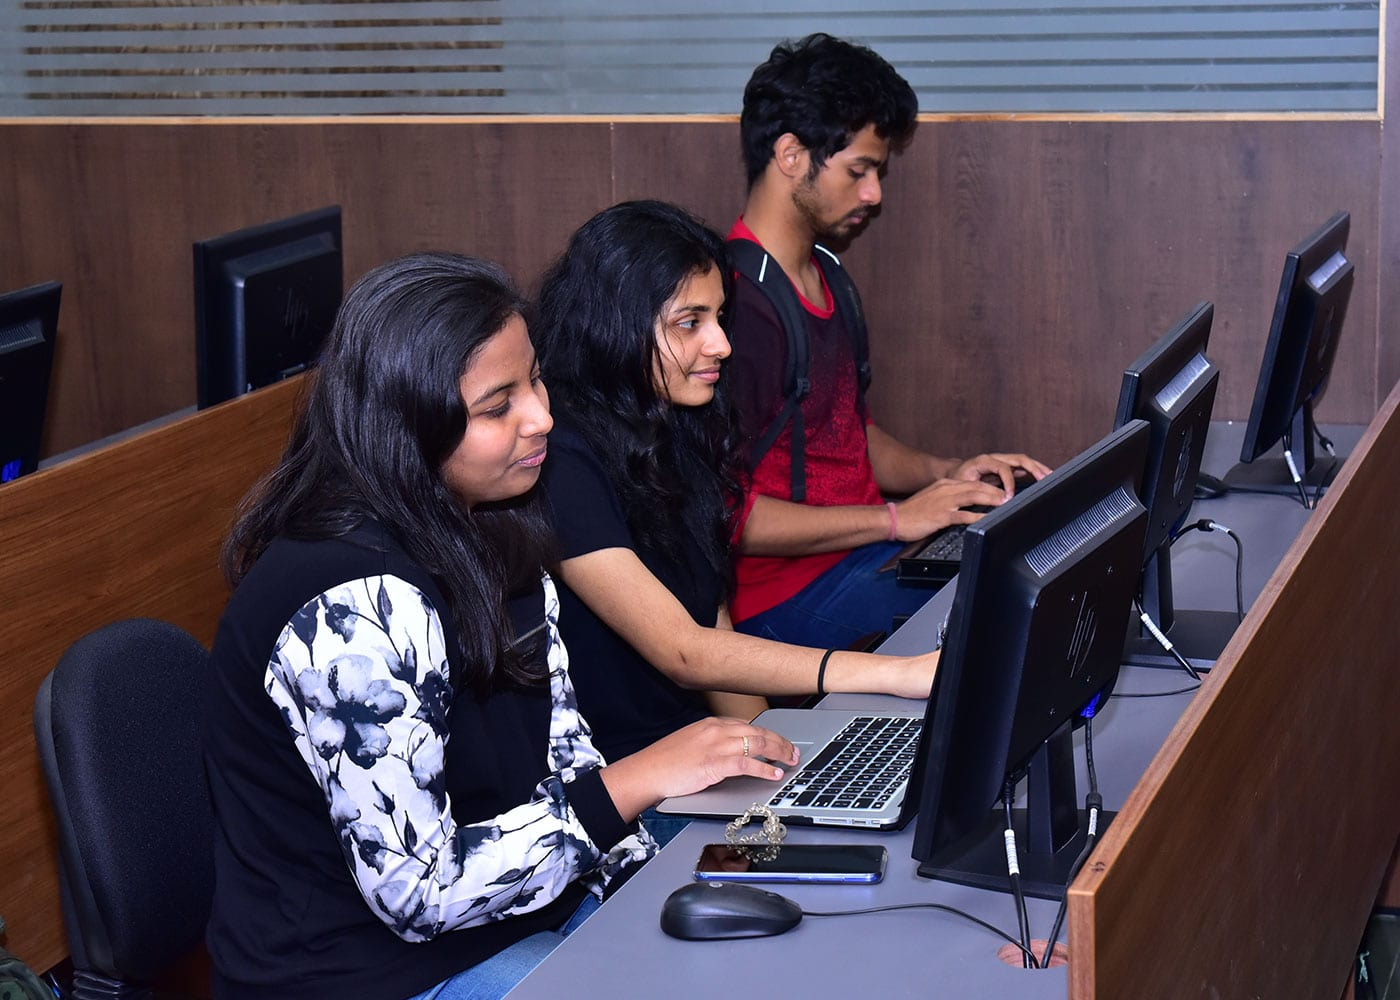 student_computerscience